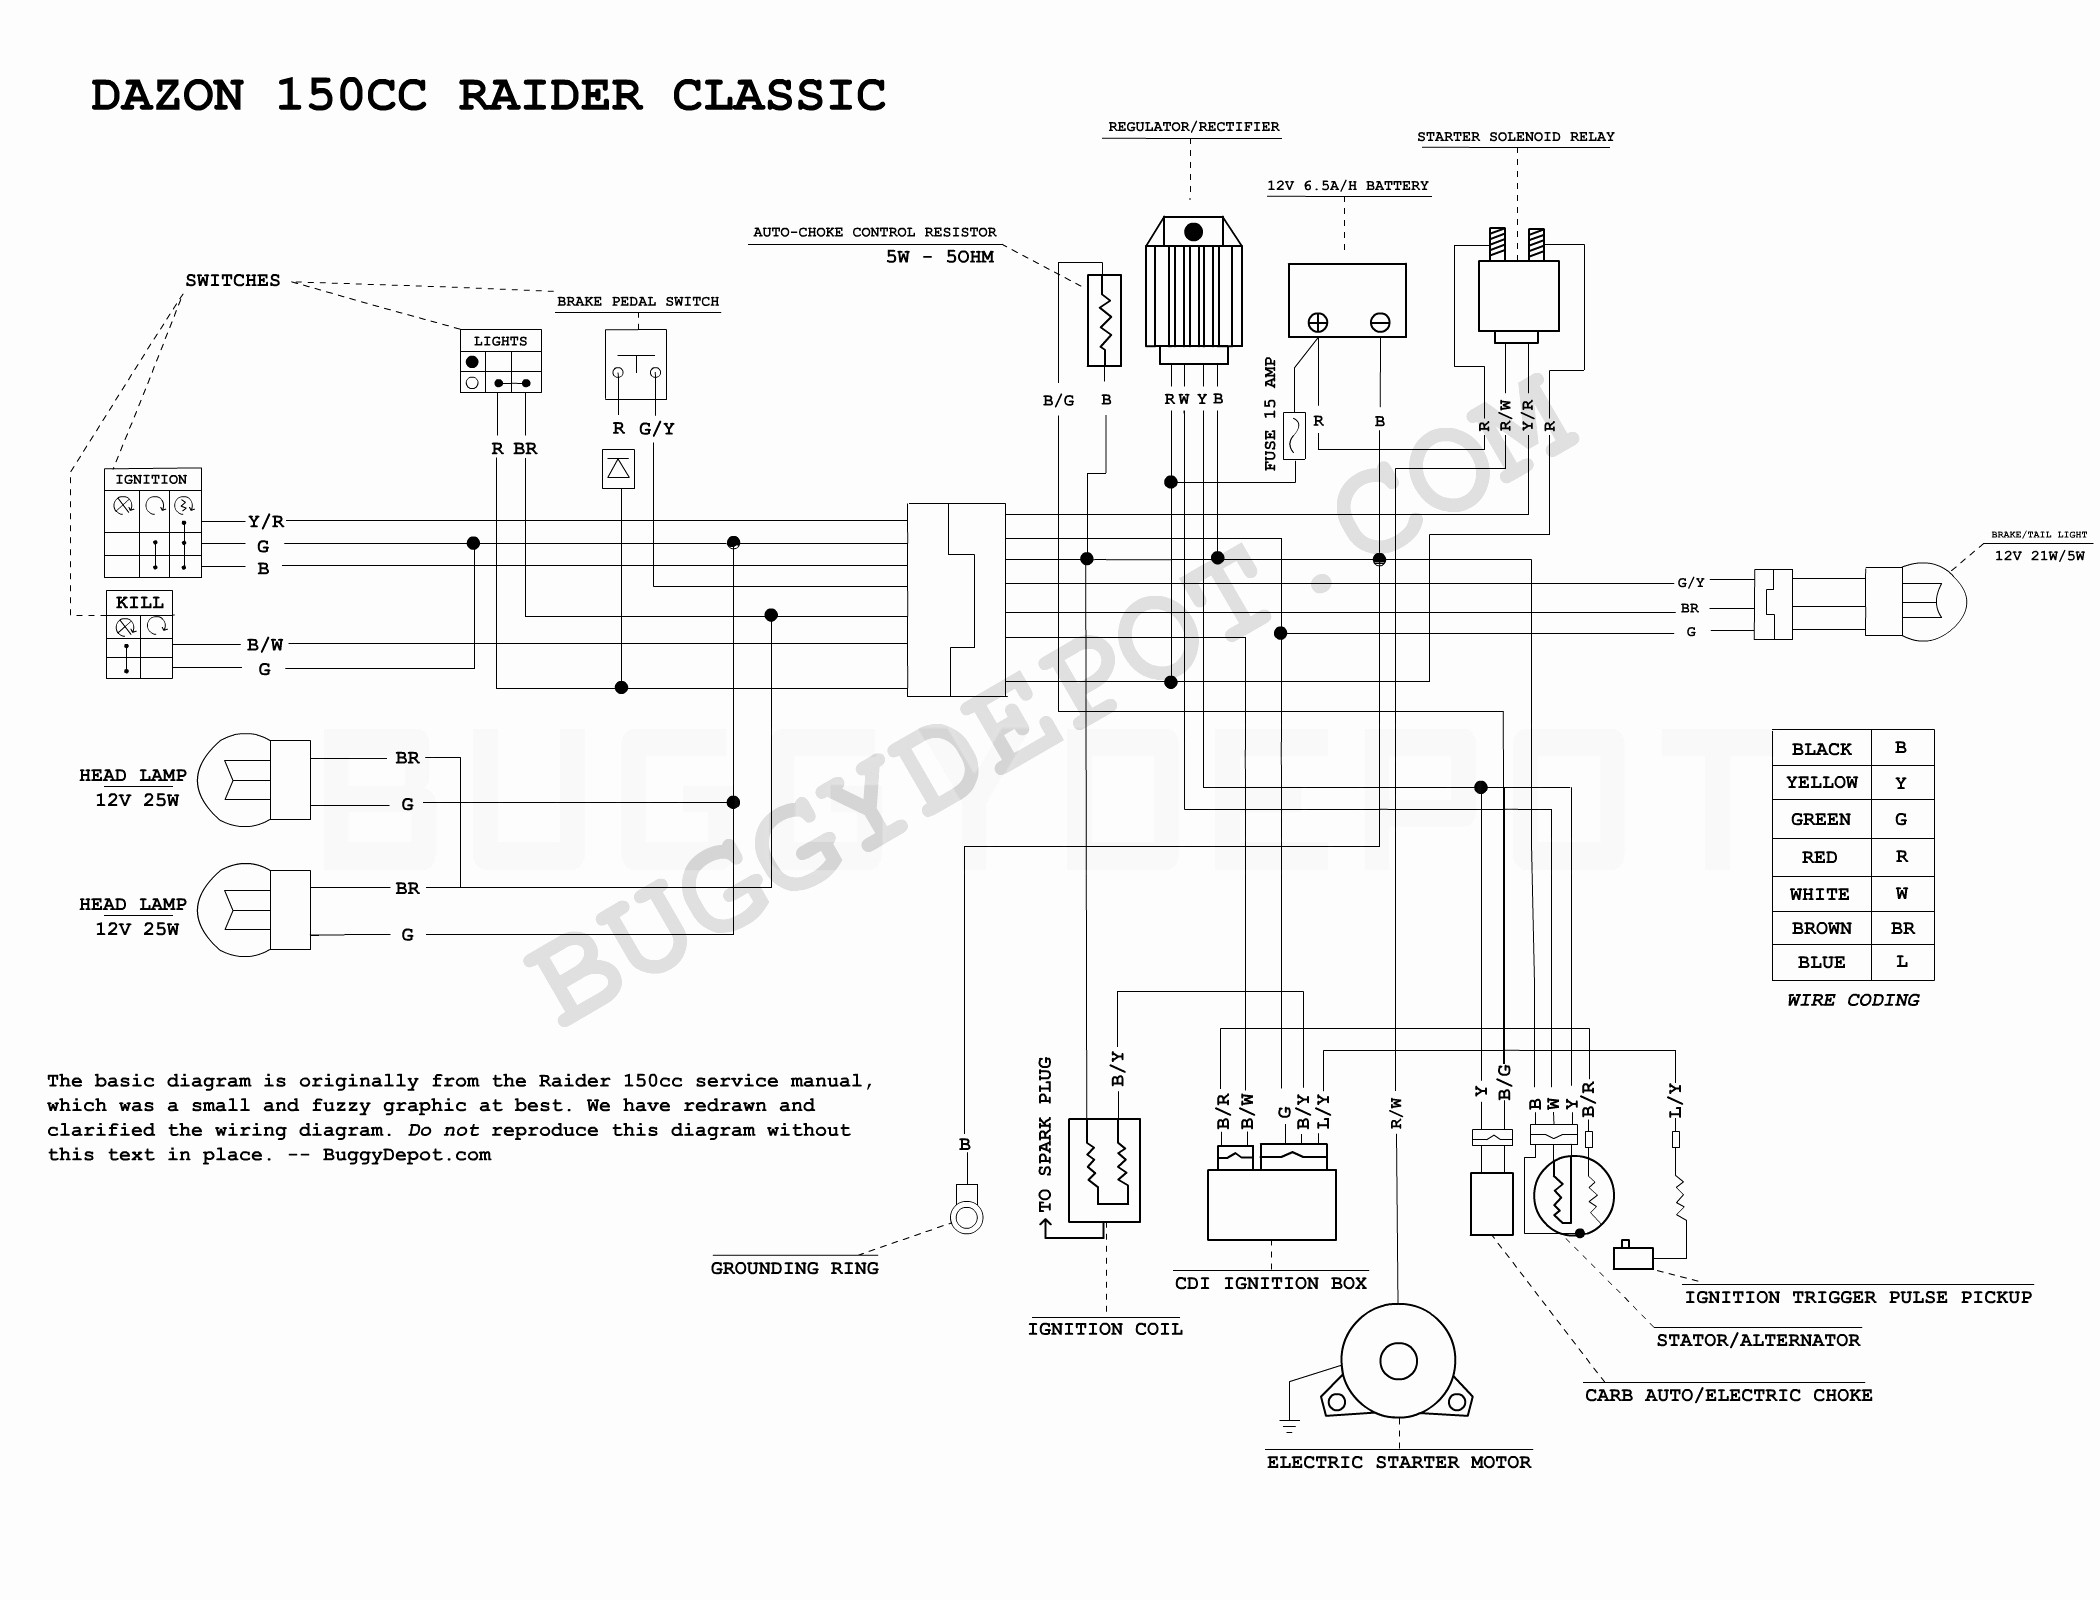 Howhit 150cc Engine Diagram 50 Best Image Gy6 Go Kart Wiring Diagram Diagram Inspiration Of Howhit 150cc Engine Diagram 50 Best Image Gy6 Go Kart Wiring Diagram Diagram Inspiration